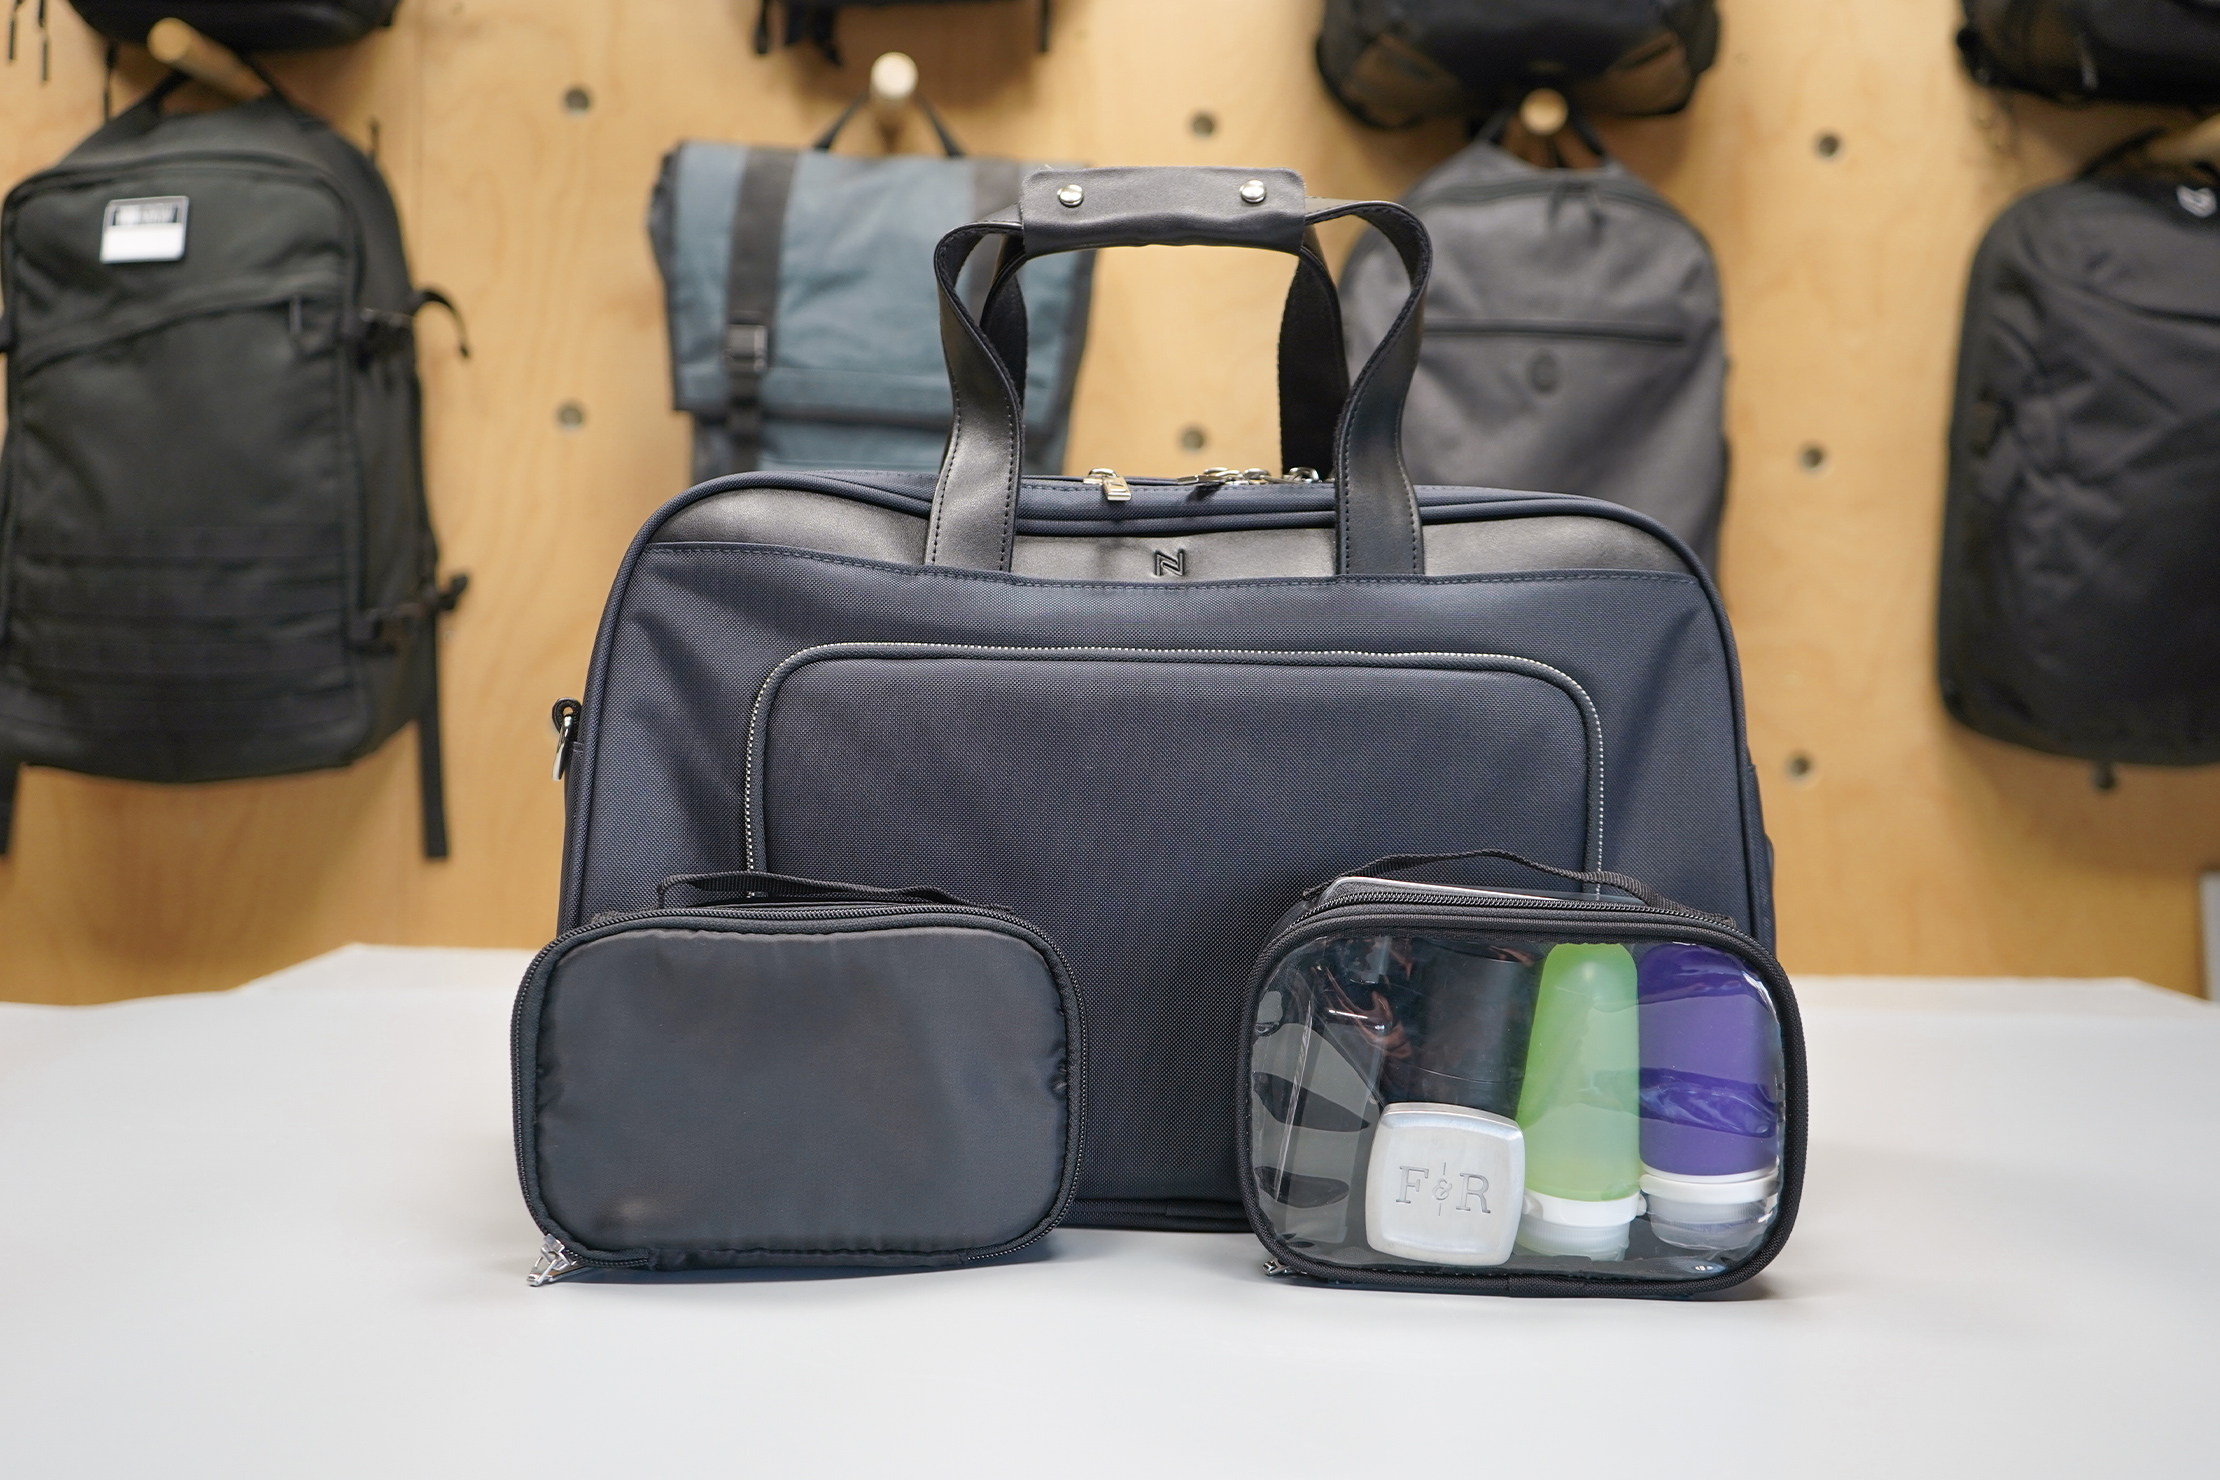 Nomad Lane Bento Bag Sport Edition tech pouch and toiletry bag